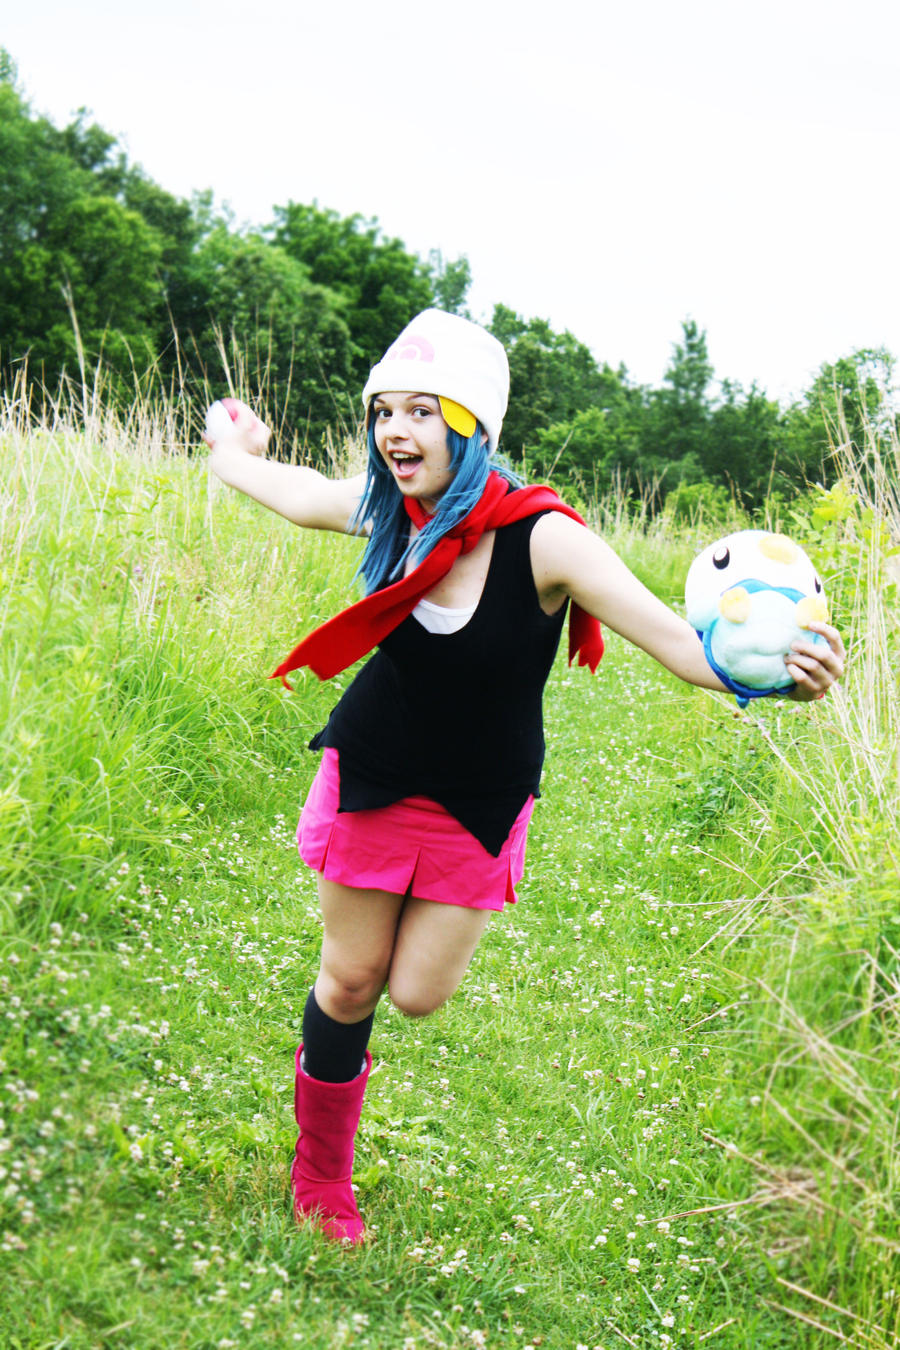 ... dawn and piplup by oki-cospi  sc 1 st  oki-cospi - DeviantArt & dawn and piplup by oki-cospi on DeviantArt